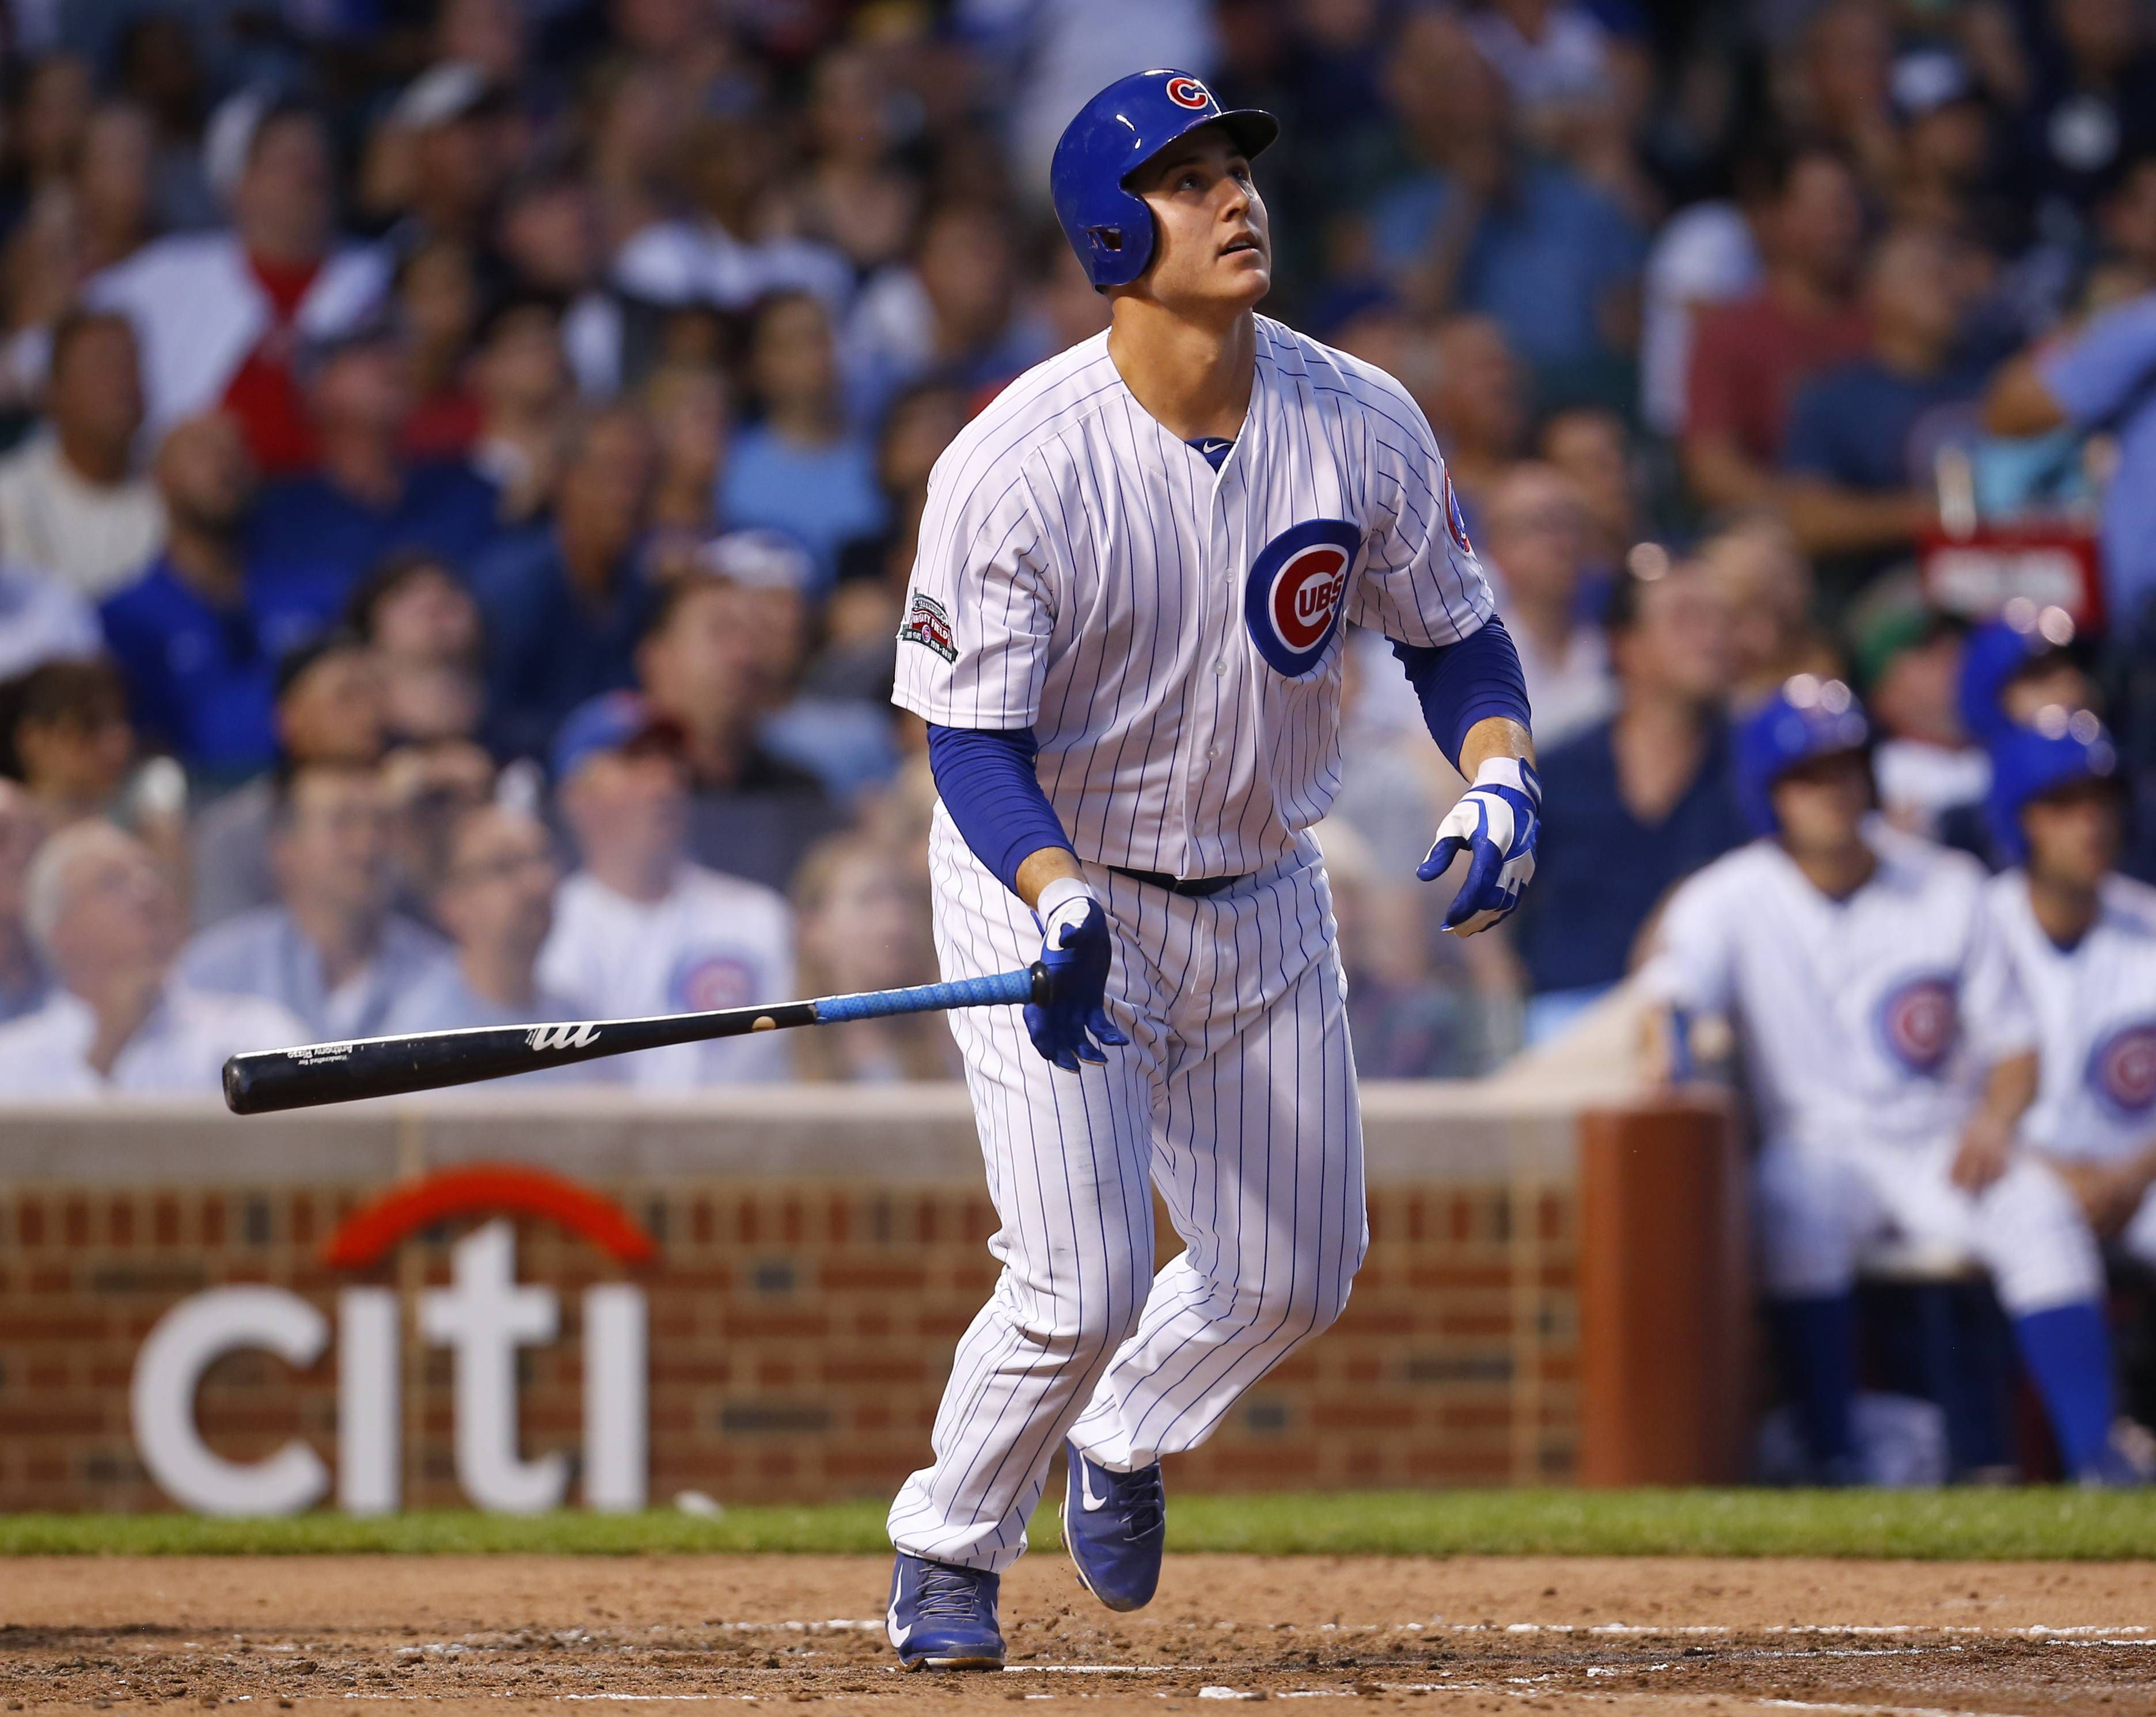 Chicago Cubs first baseman Anthony Rizzo (44) watches his solo home run in the third inning of a baseball game against the San Diego Padres in Chicago, Tuesday, July 22, 2014.